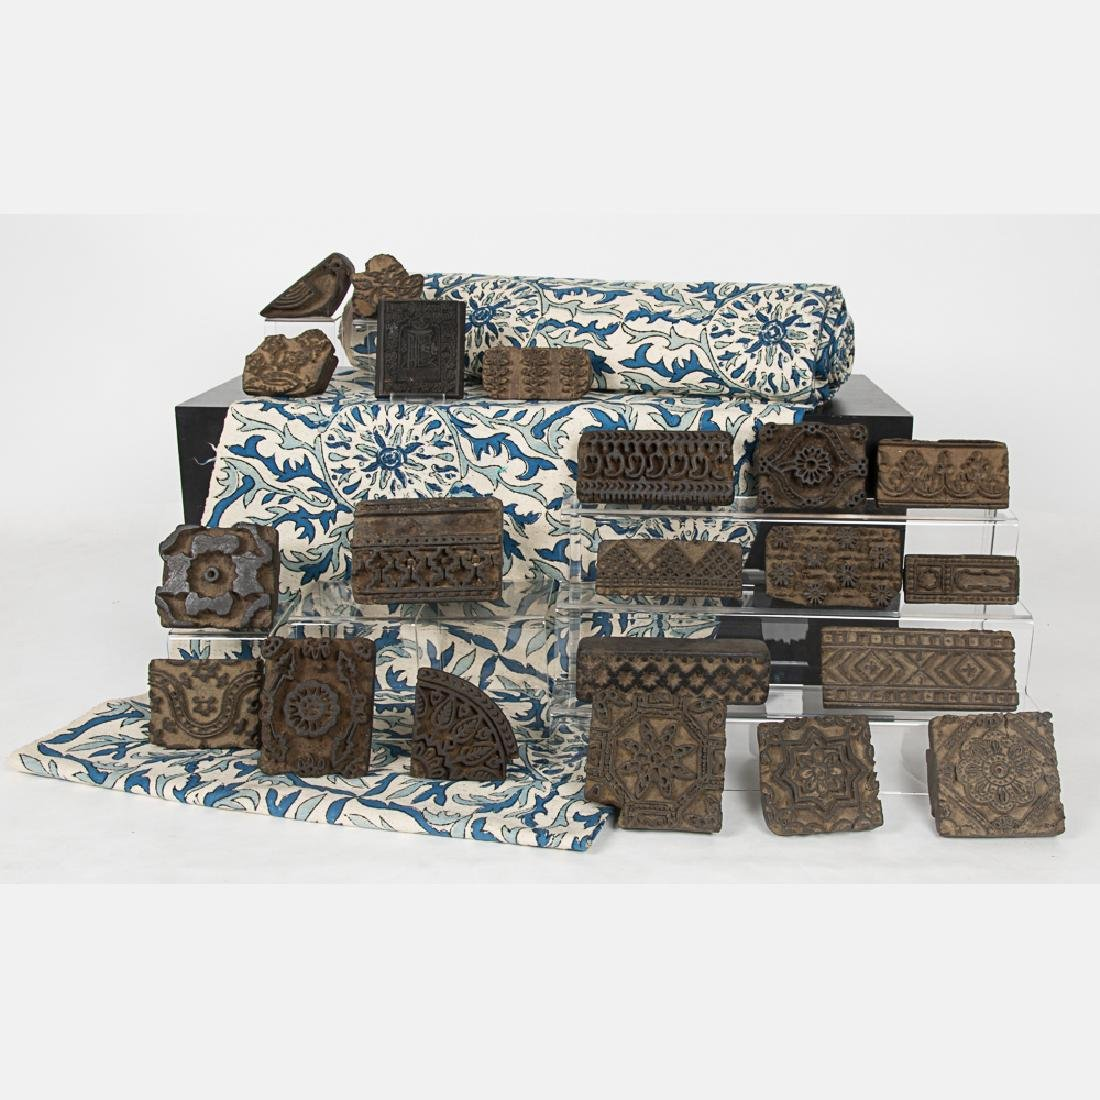 A Collection of Indonesian Textile Block Printing